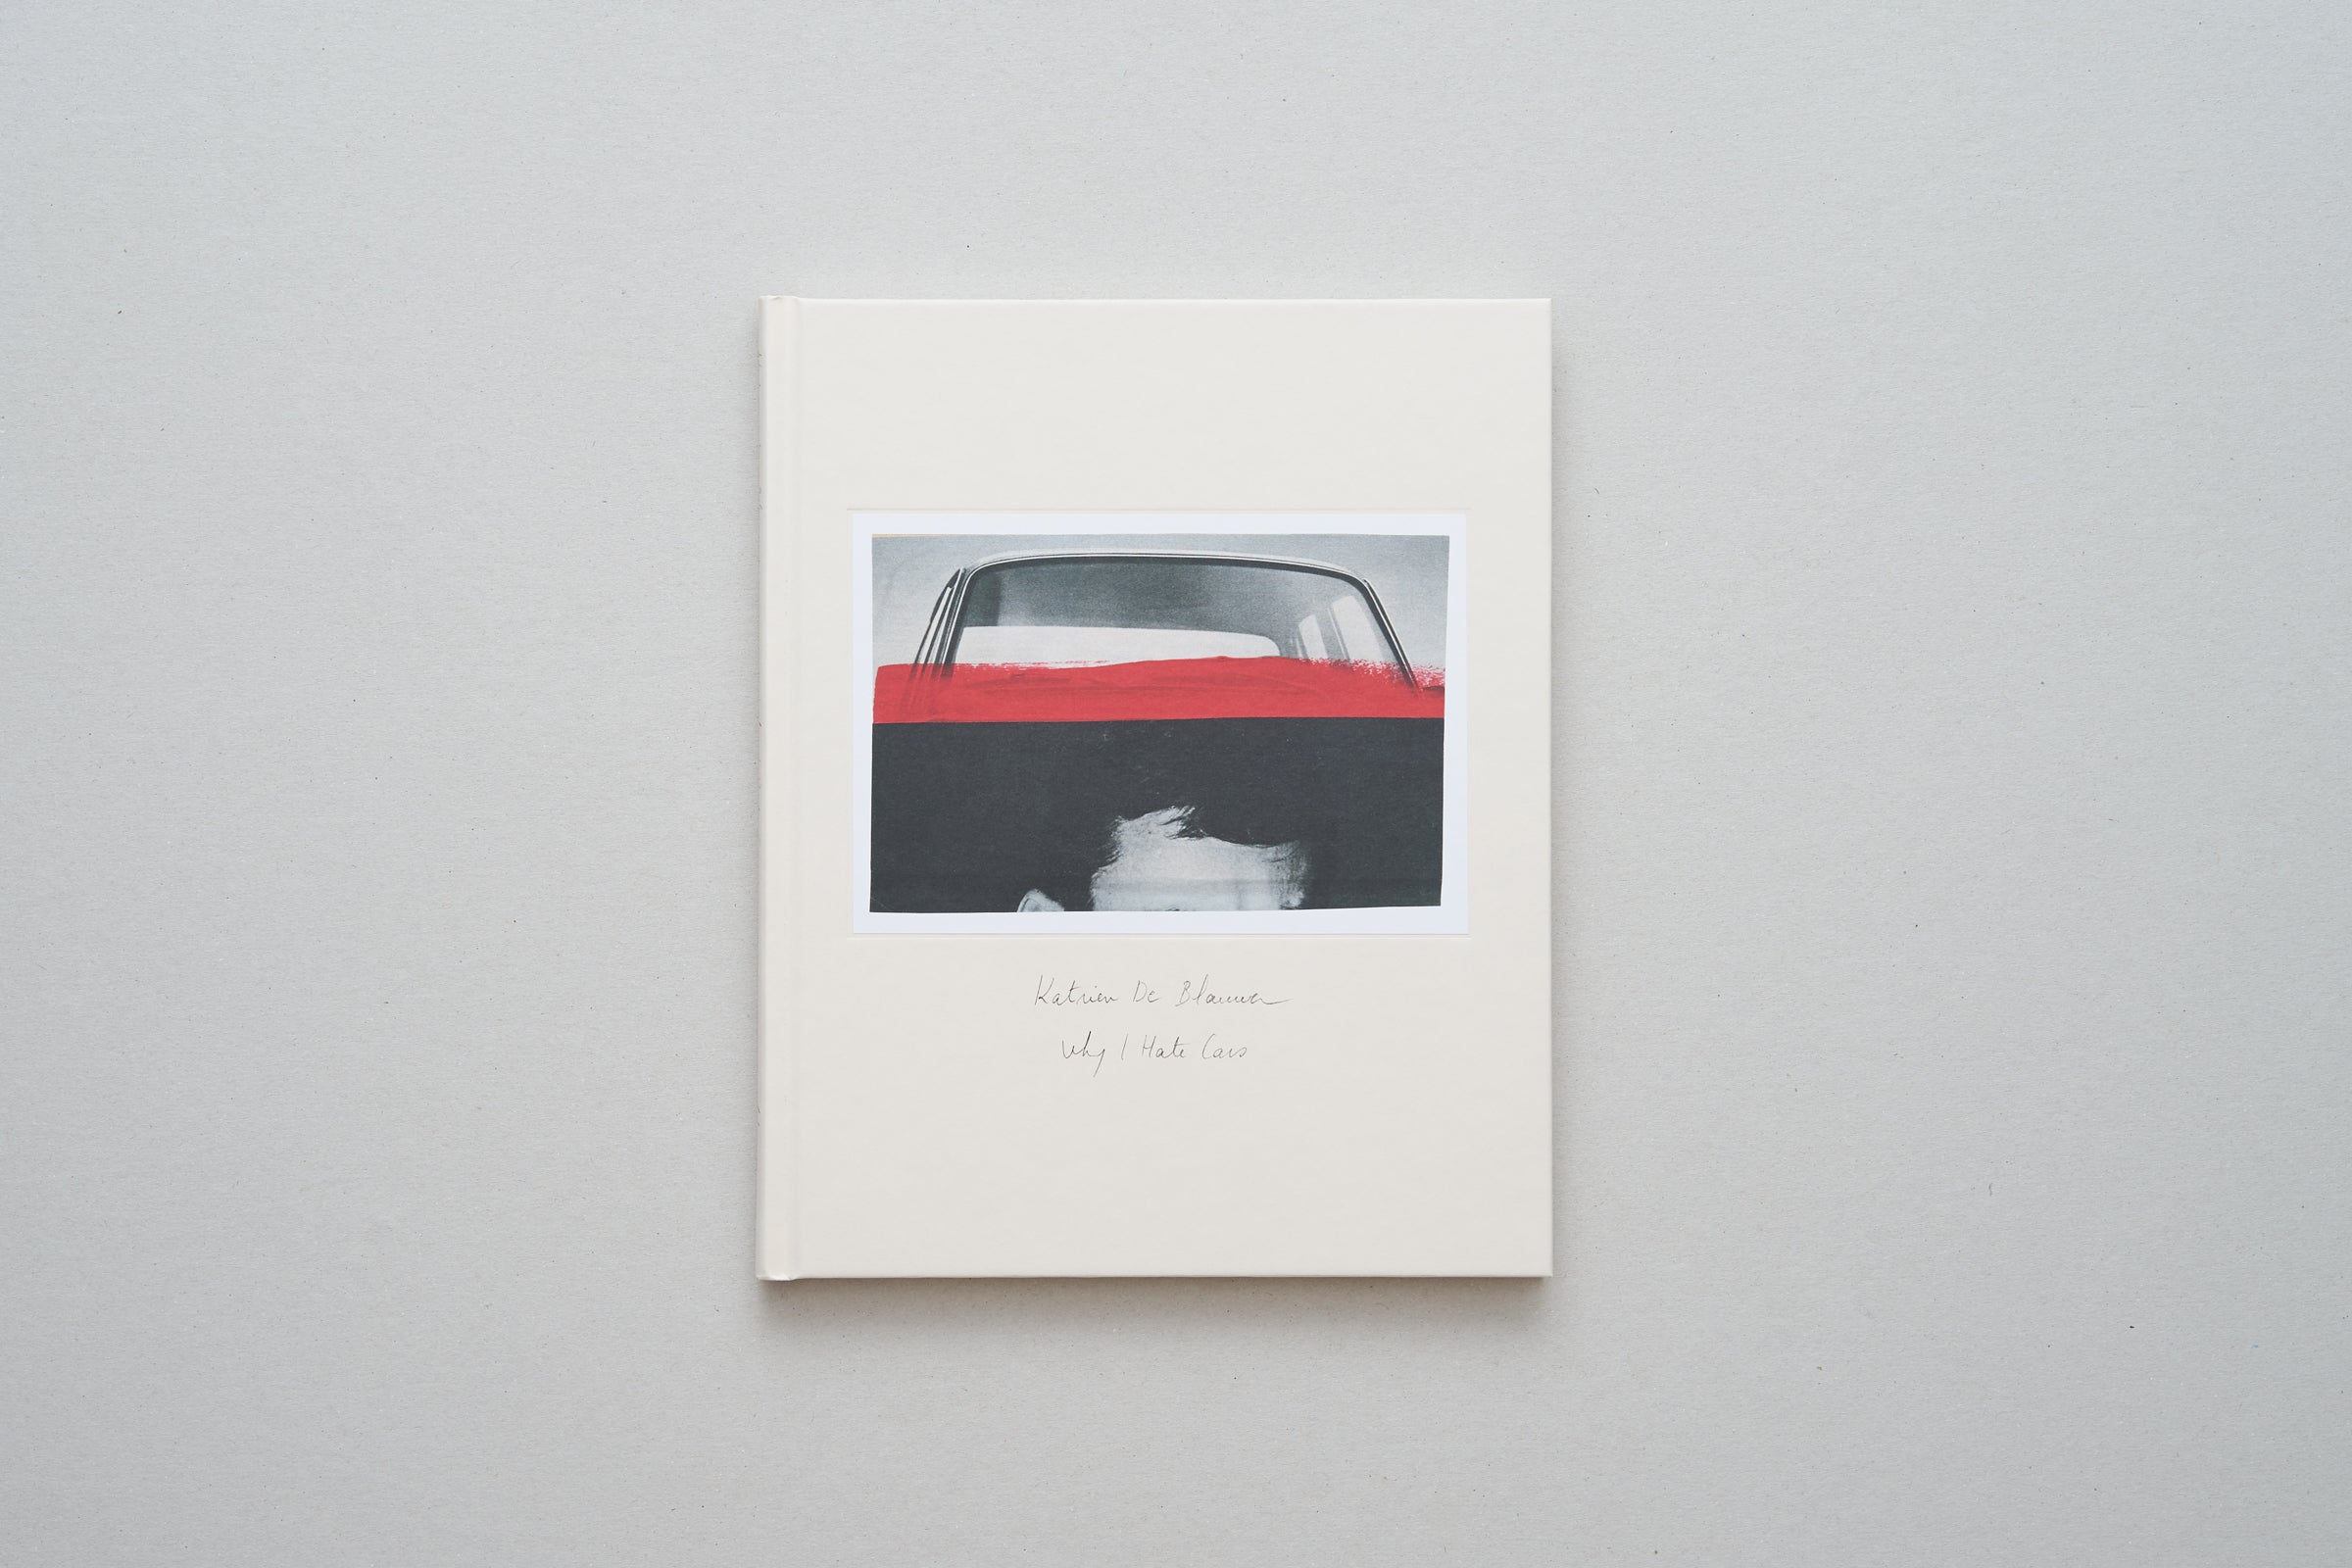 Why I Hate Cars Book (2019) by Katrien De Blauwer